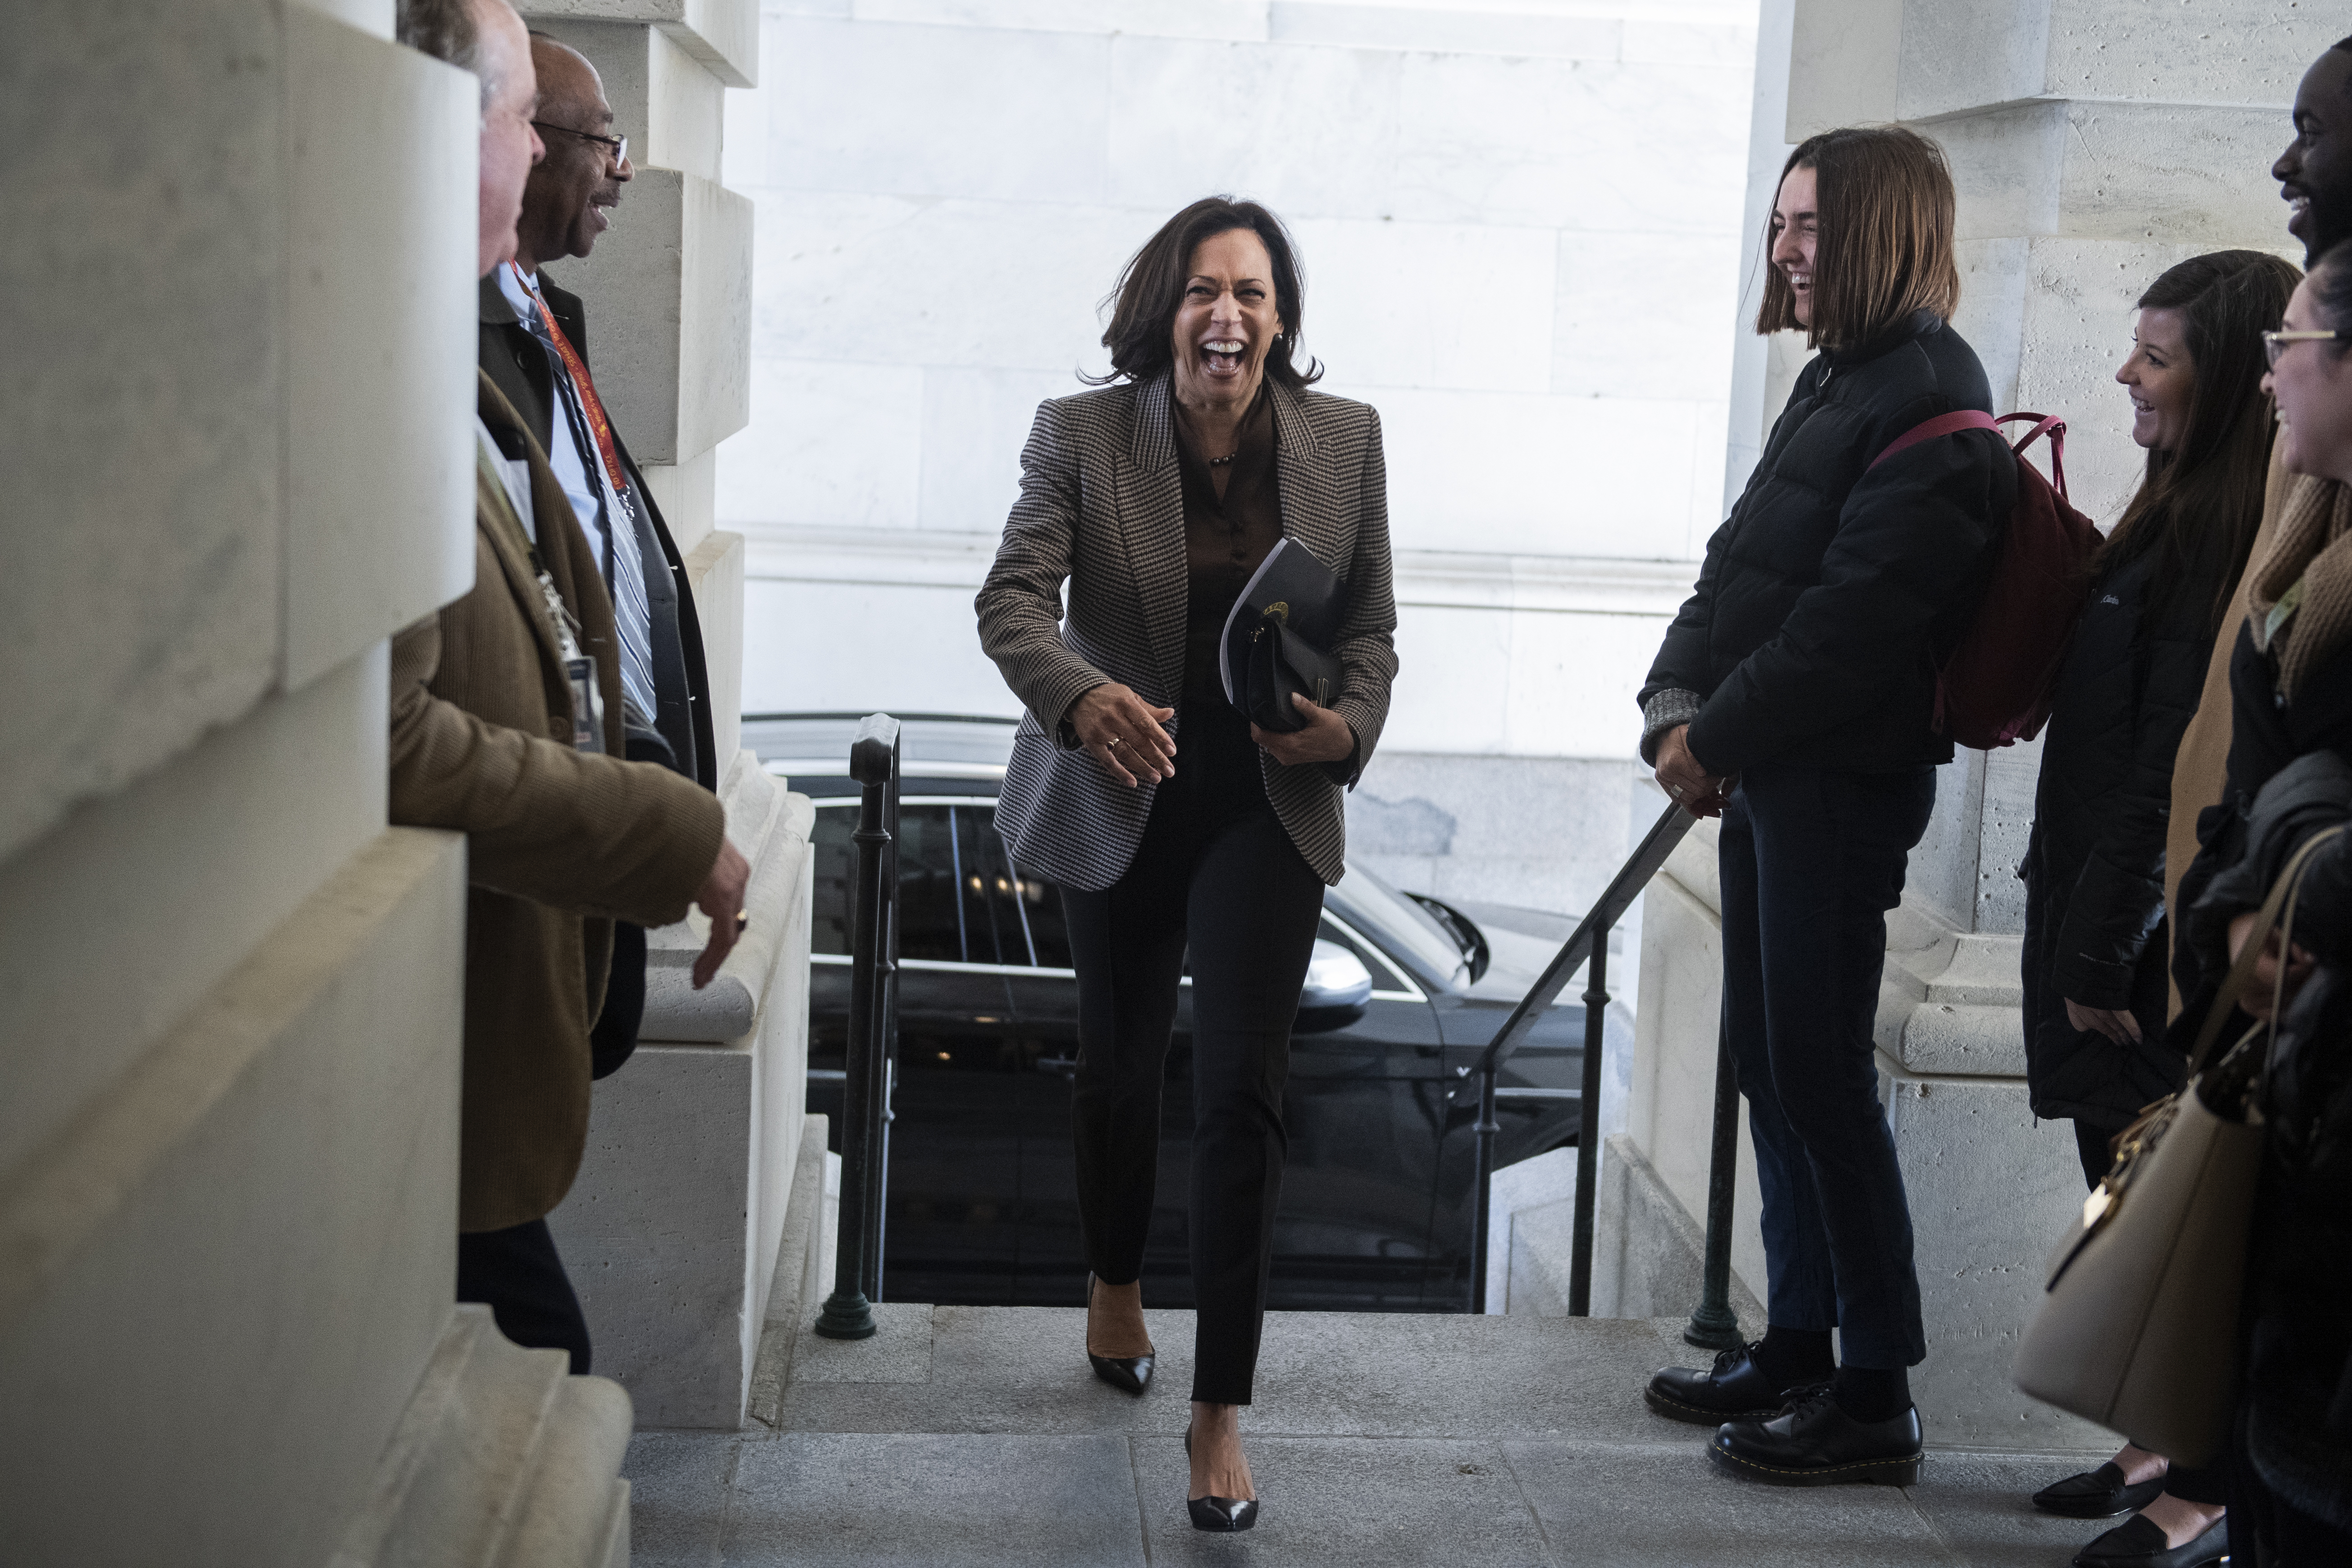 UNITED STATES - JANUARY 29: Sen. Kamala Harris, D-Calif., arrives to the Senate carriage entrance of the Capitol before the continuation of the impeachment trial of President Donald Trump on Wednesday, January 29, 2020. (Photo By Tom Williams/CQ Roll Call)